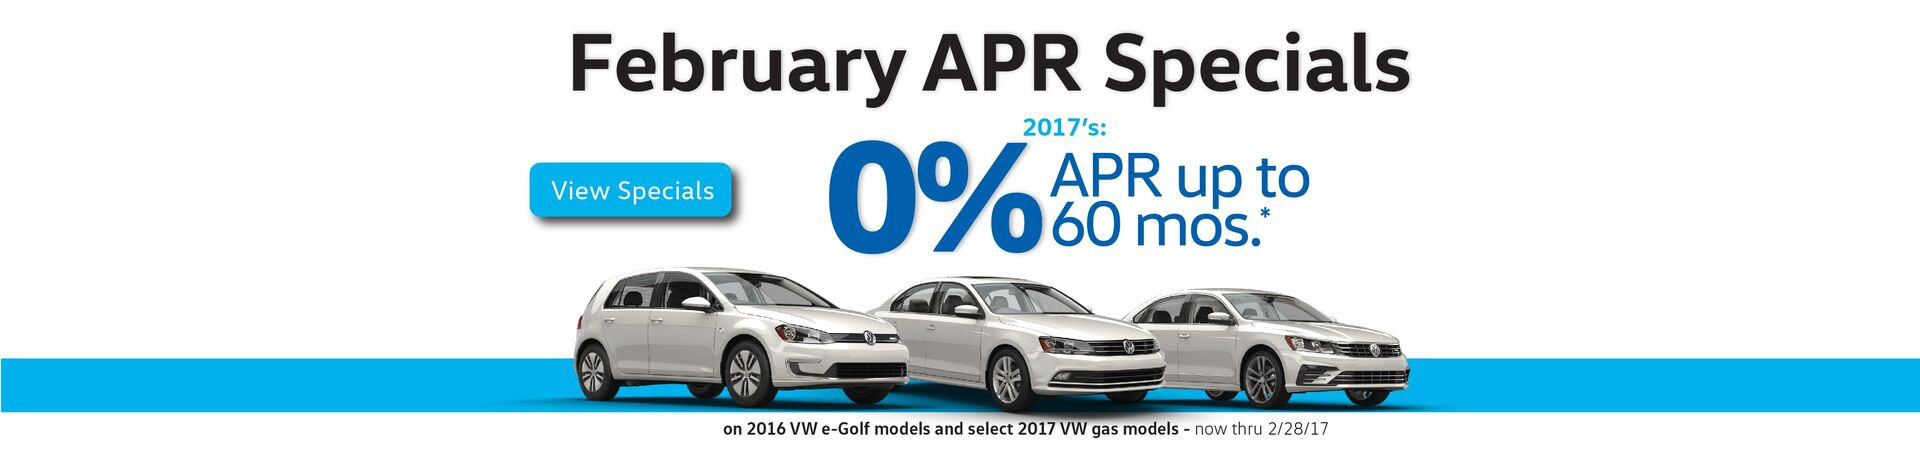 Capistrano VW February 0% APR for 60 months on select new 2017 VW models